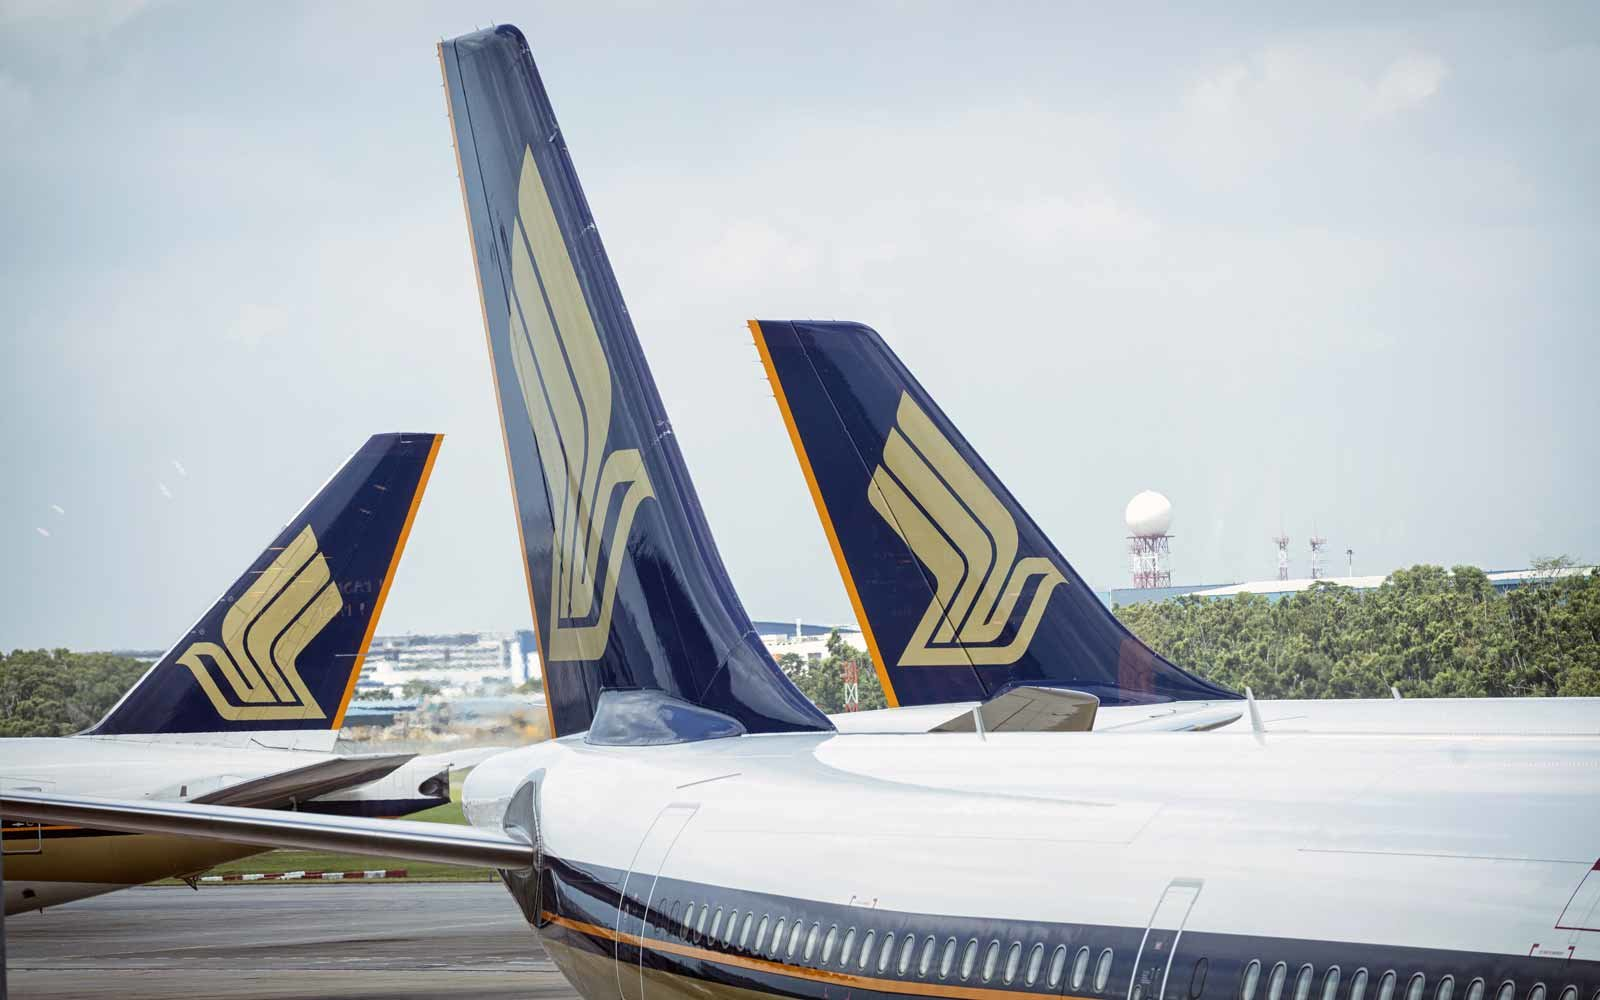 Singapore Airlines Planes at Changi